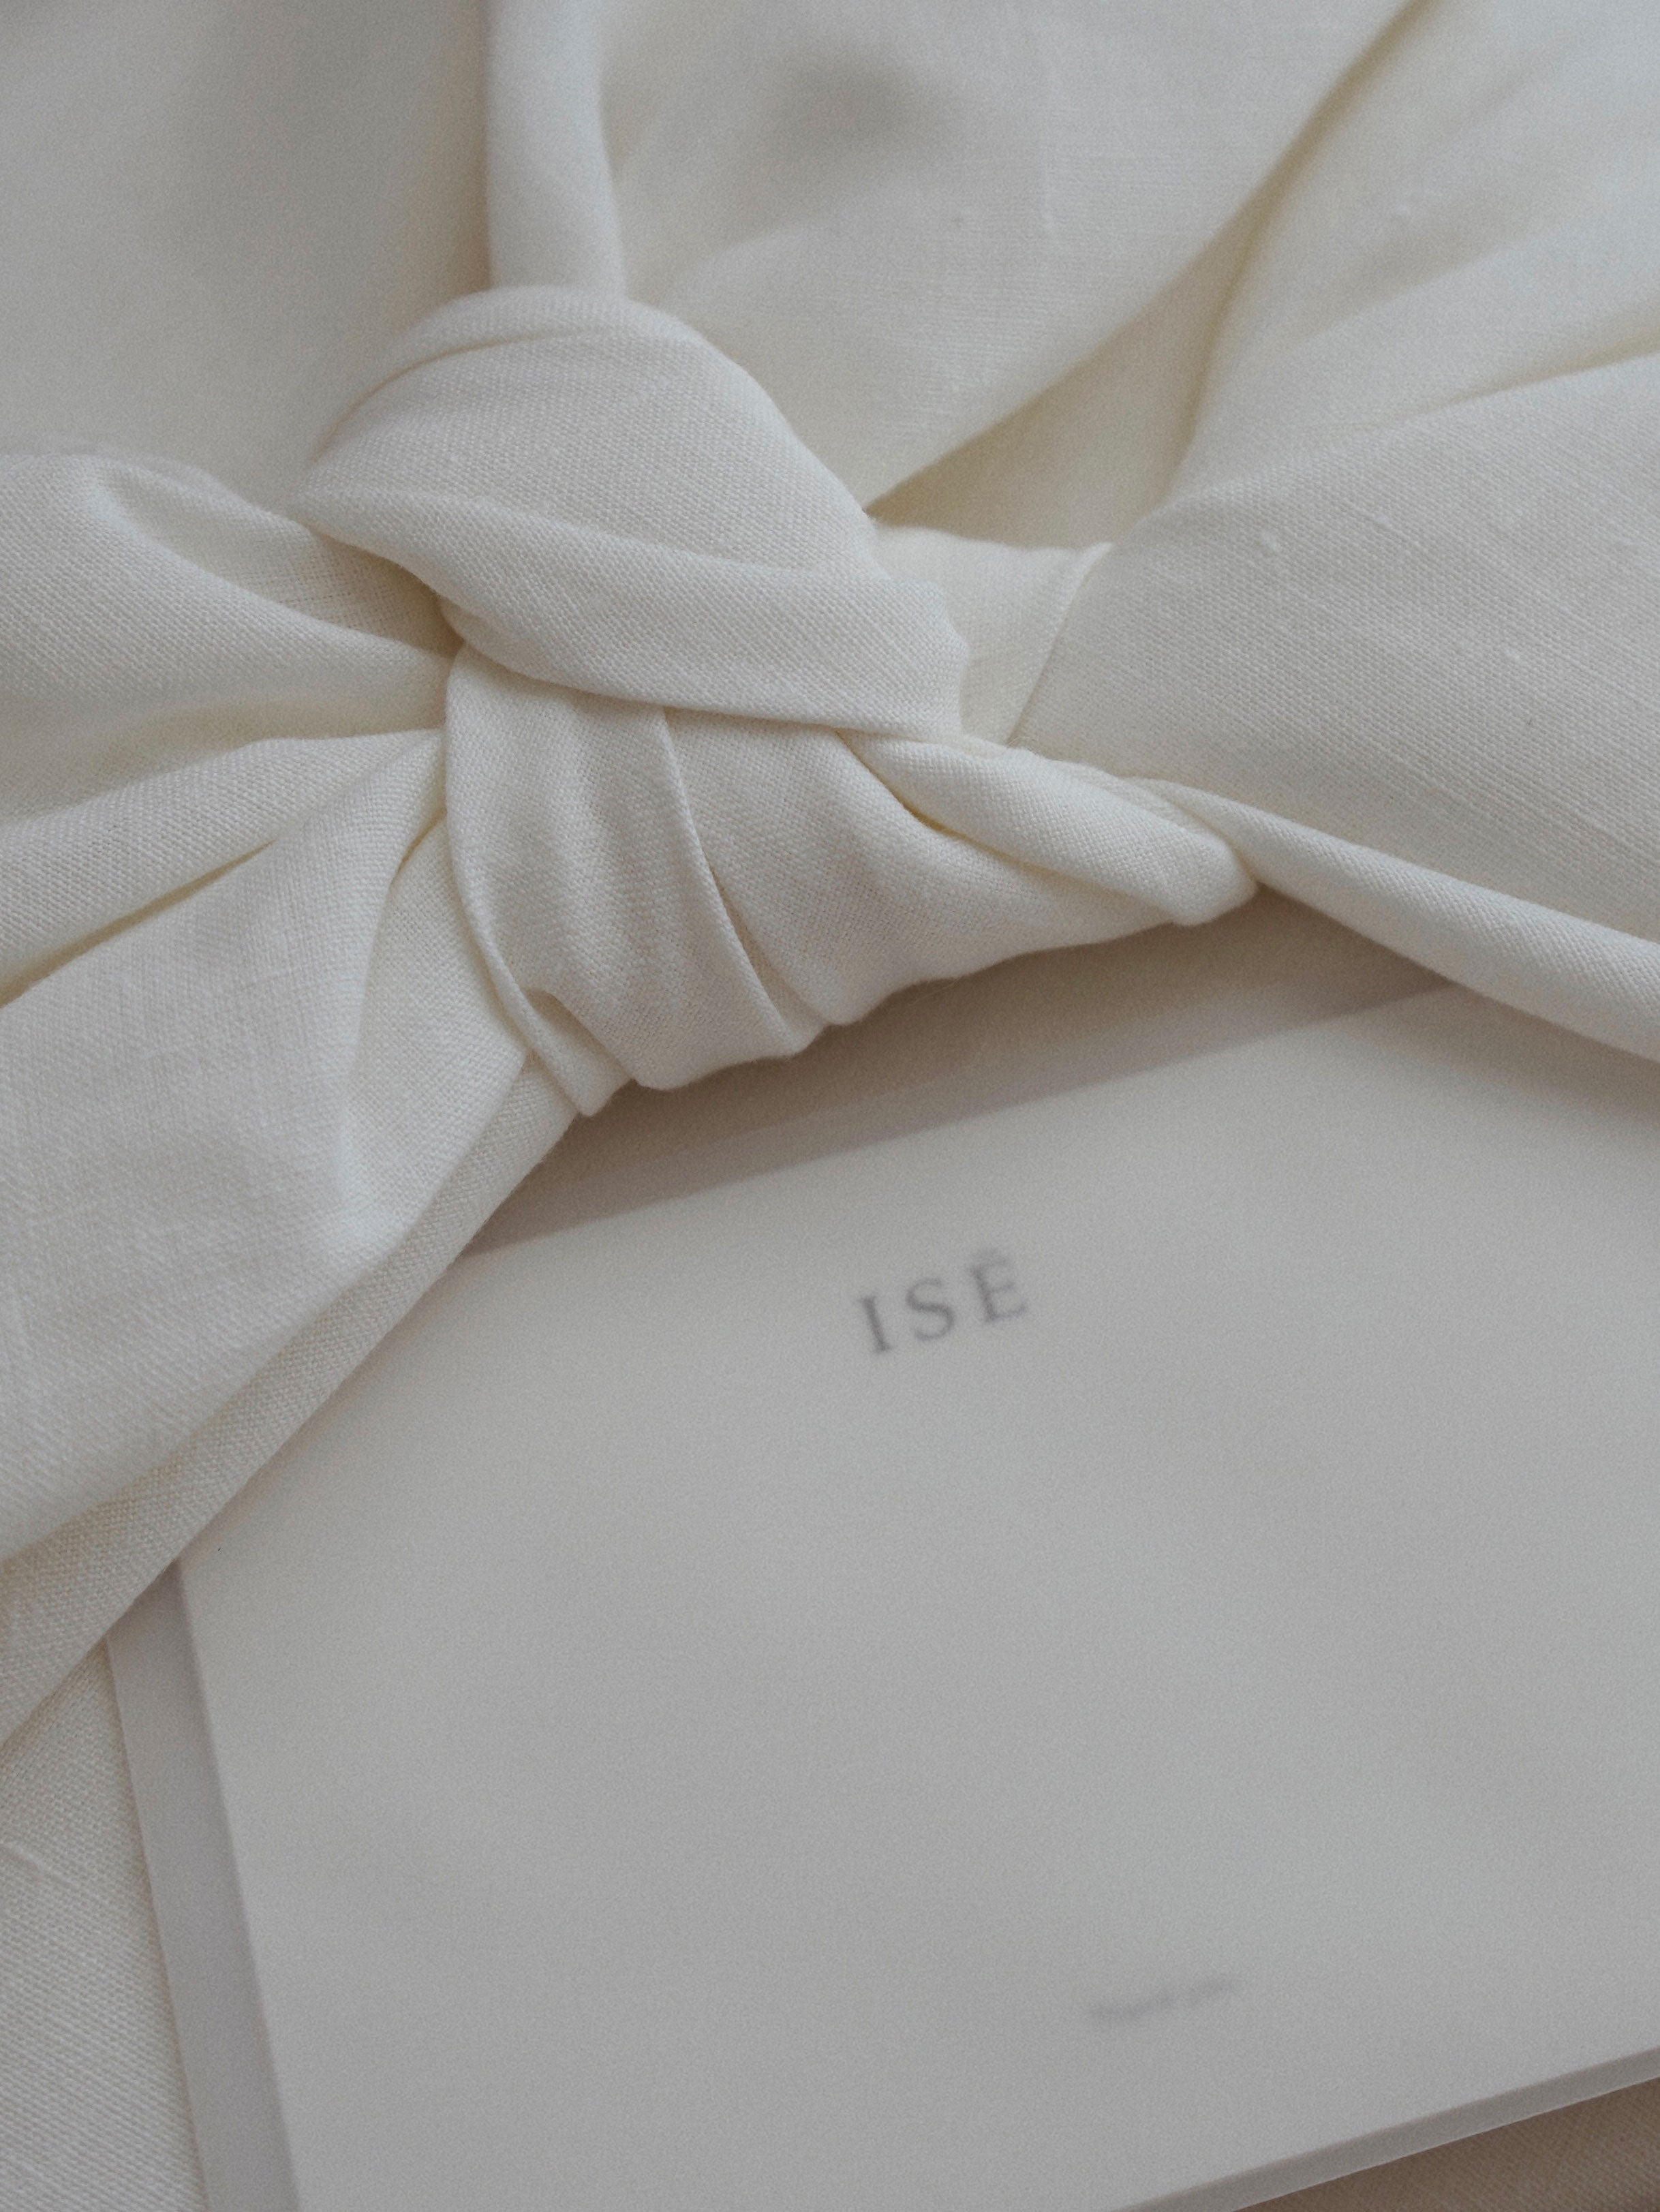 Saasha Burns Mother's Day Interview - ISE Belgian linen sheets wrapped sustainably | ISĒ